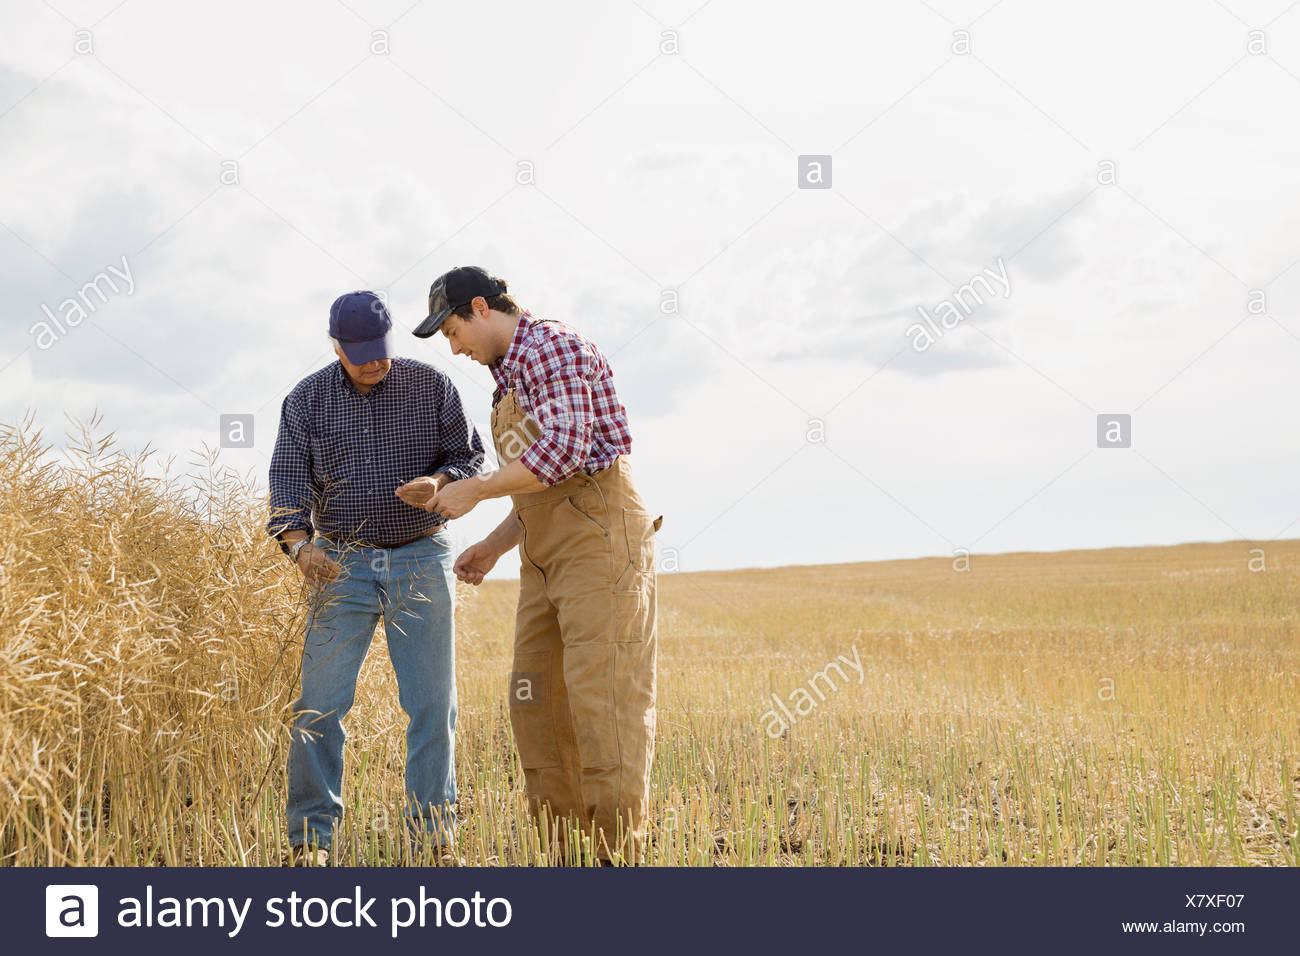 Farmers examining wheat crop - Stock Image